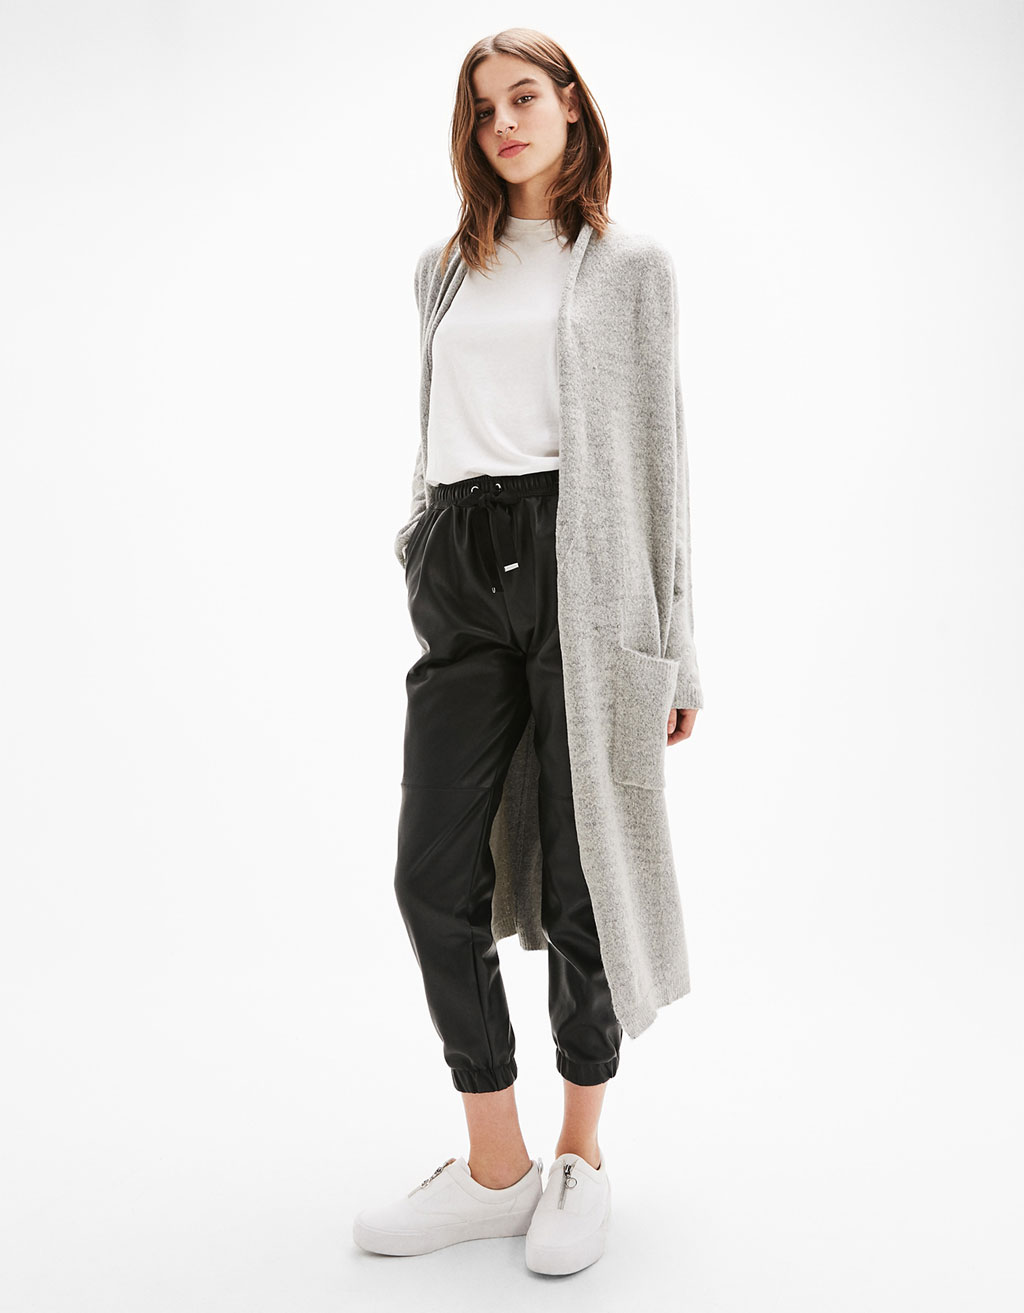 Long knit cardigan with pockets.